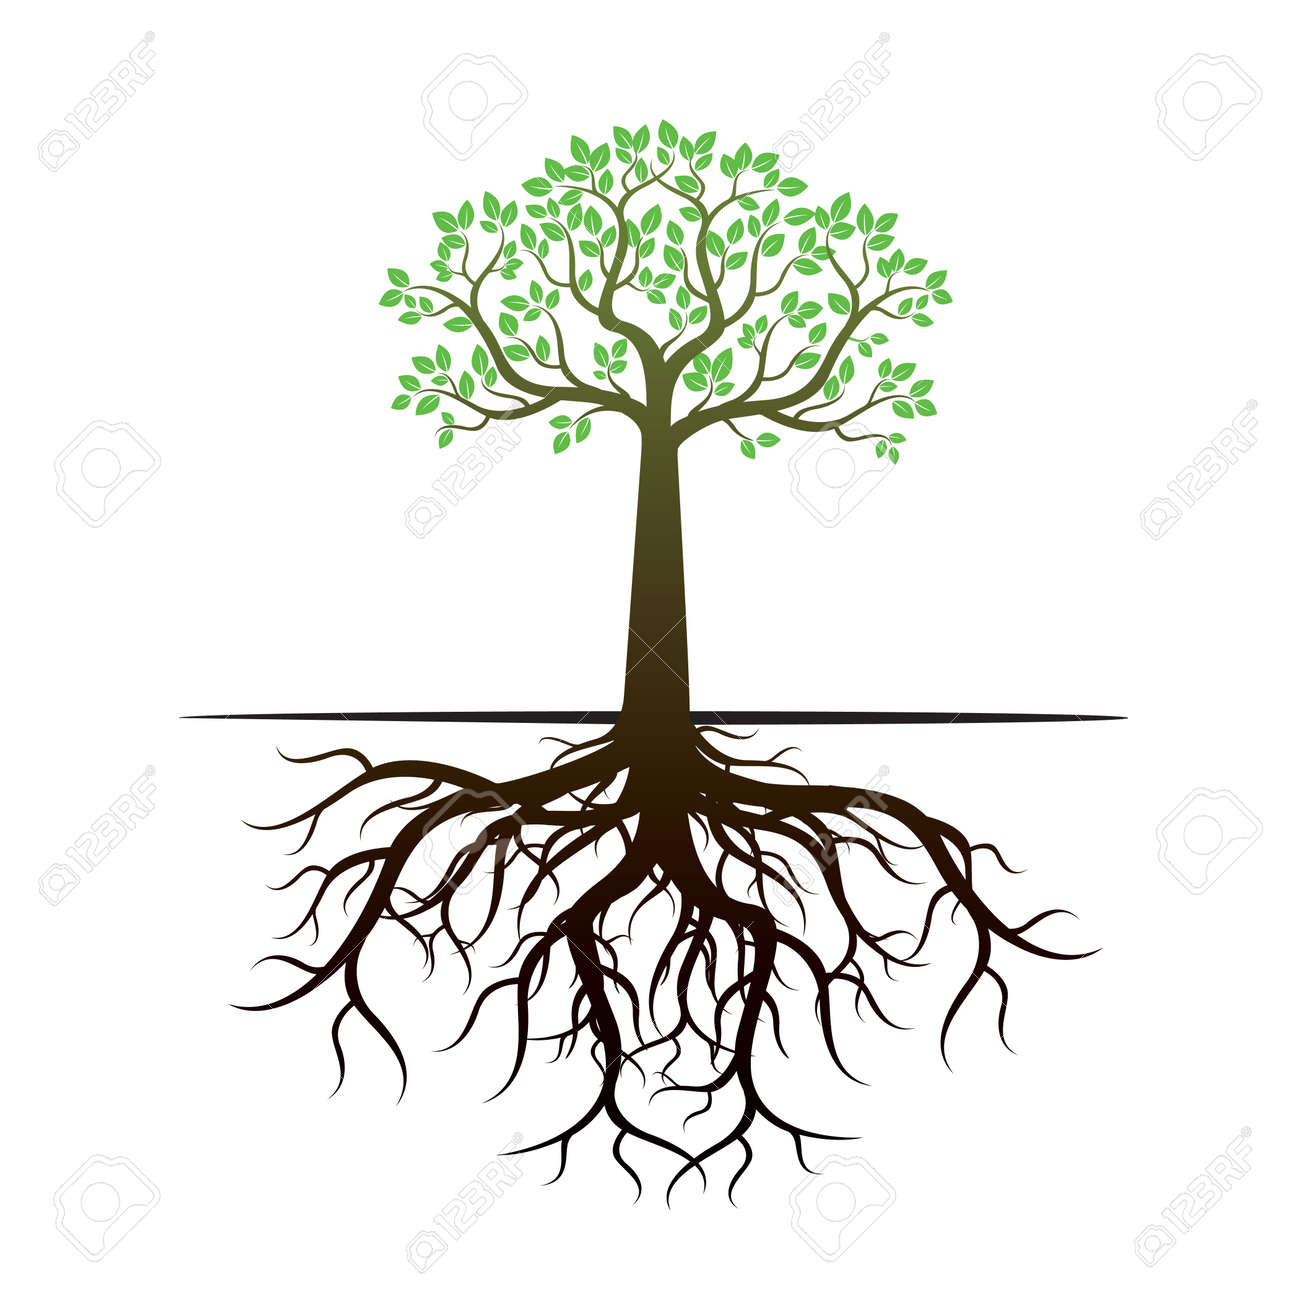 tree and roots vector illustration royalty free cliparts vectors rh 123rf com tree with roots silhouette vector free tree with roots vector free